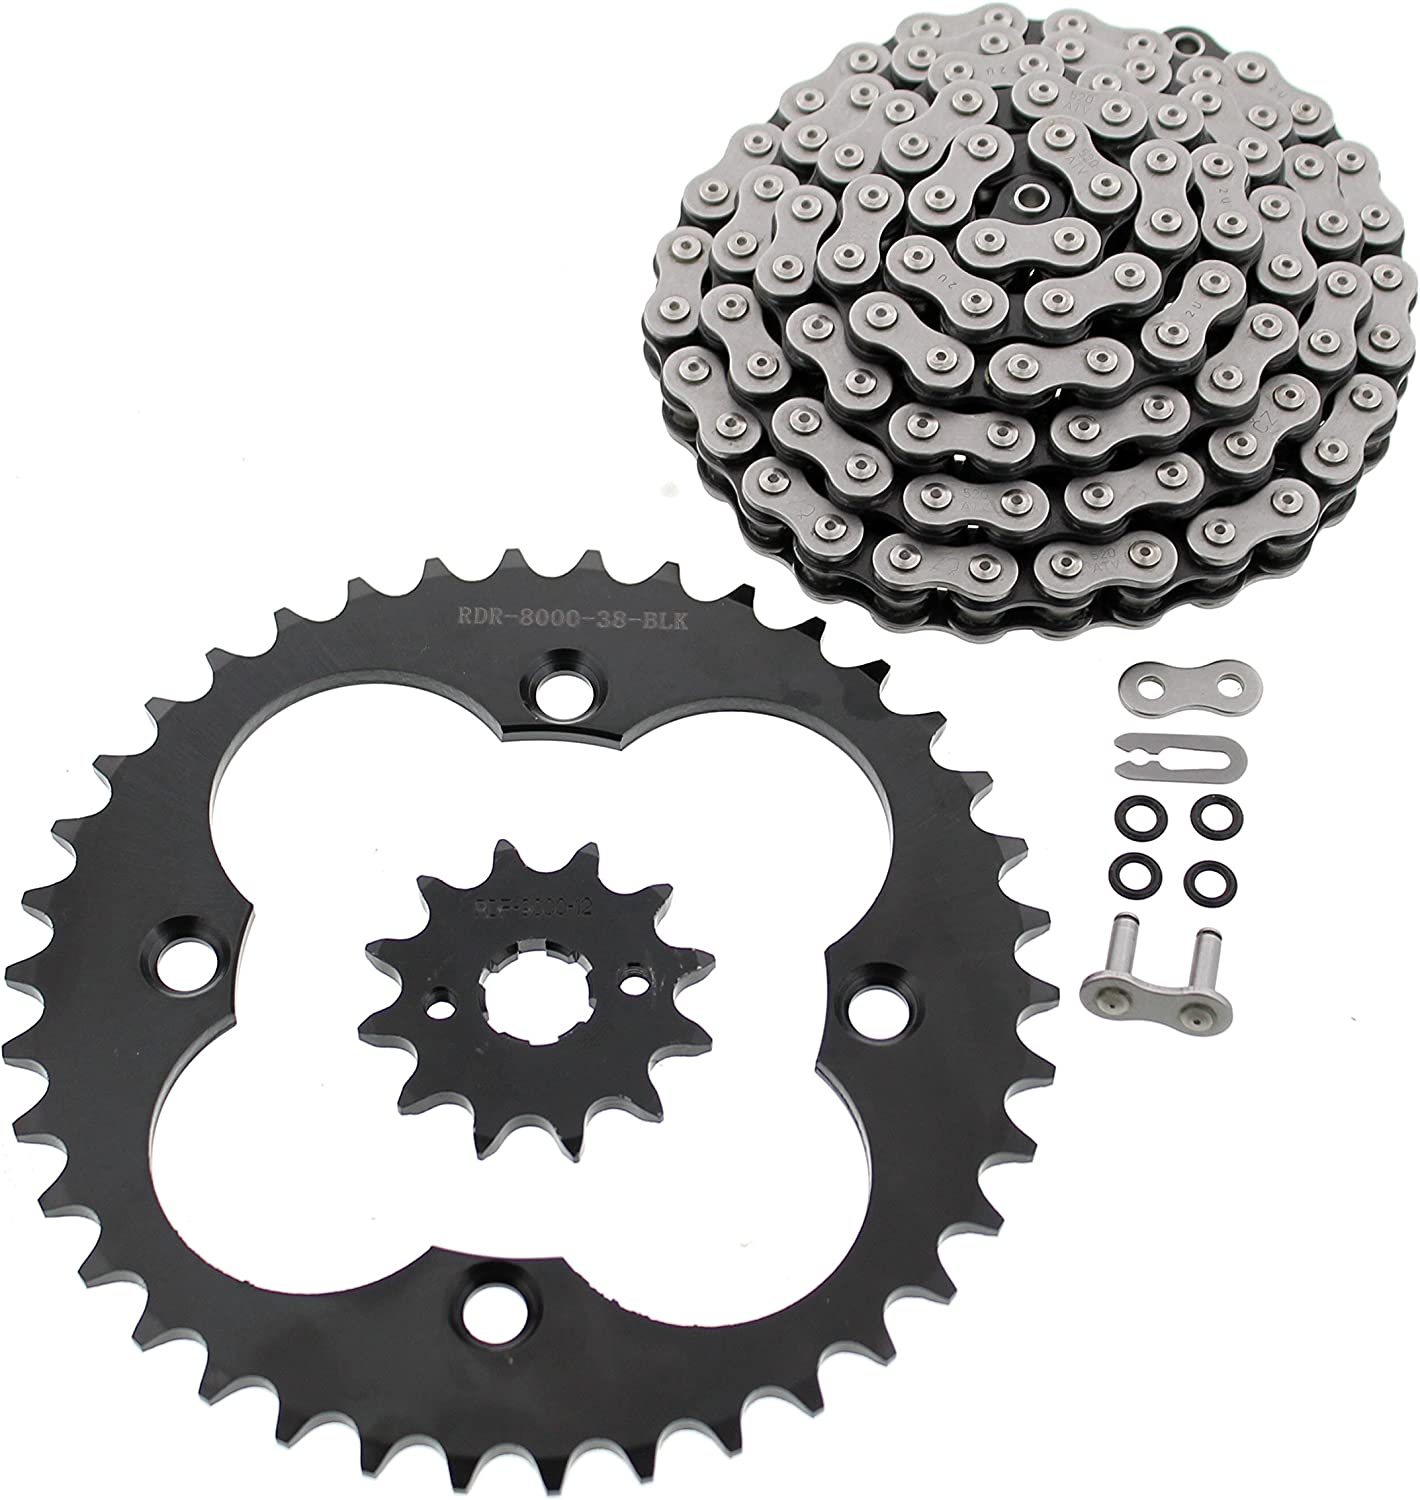 1993 1994 1995 Fits Honda 300EX TRX300EX Yellow O-Ring Chain and Black Sprocket 12//38